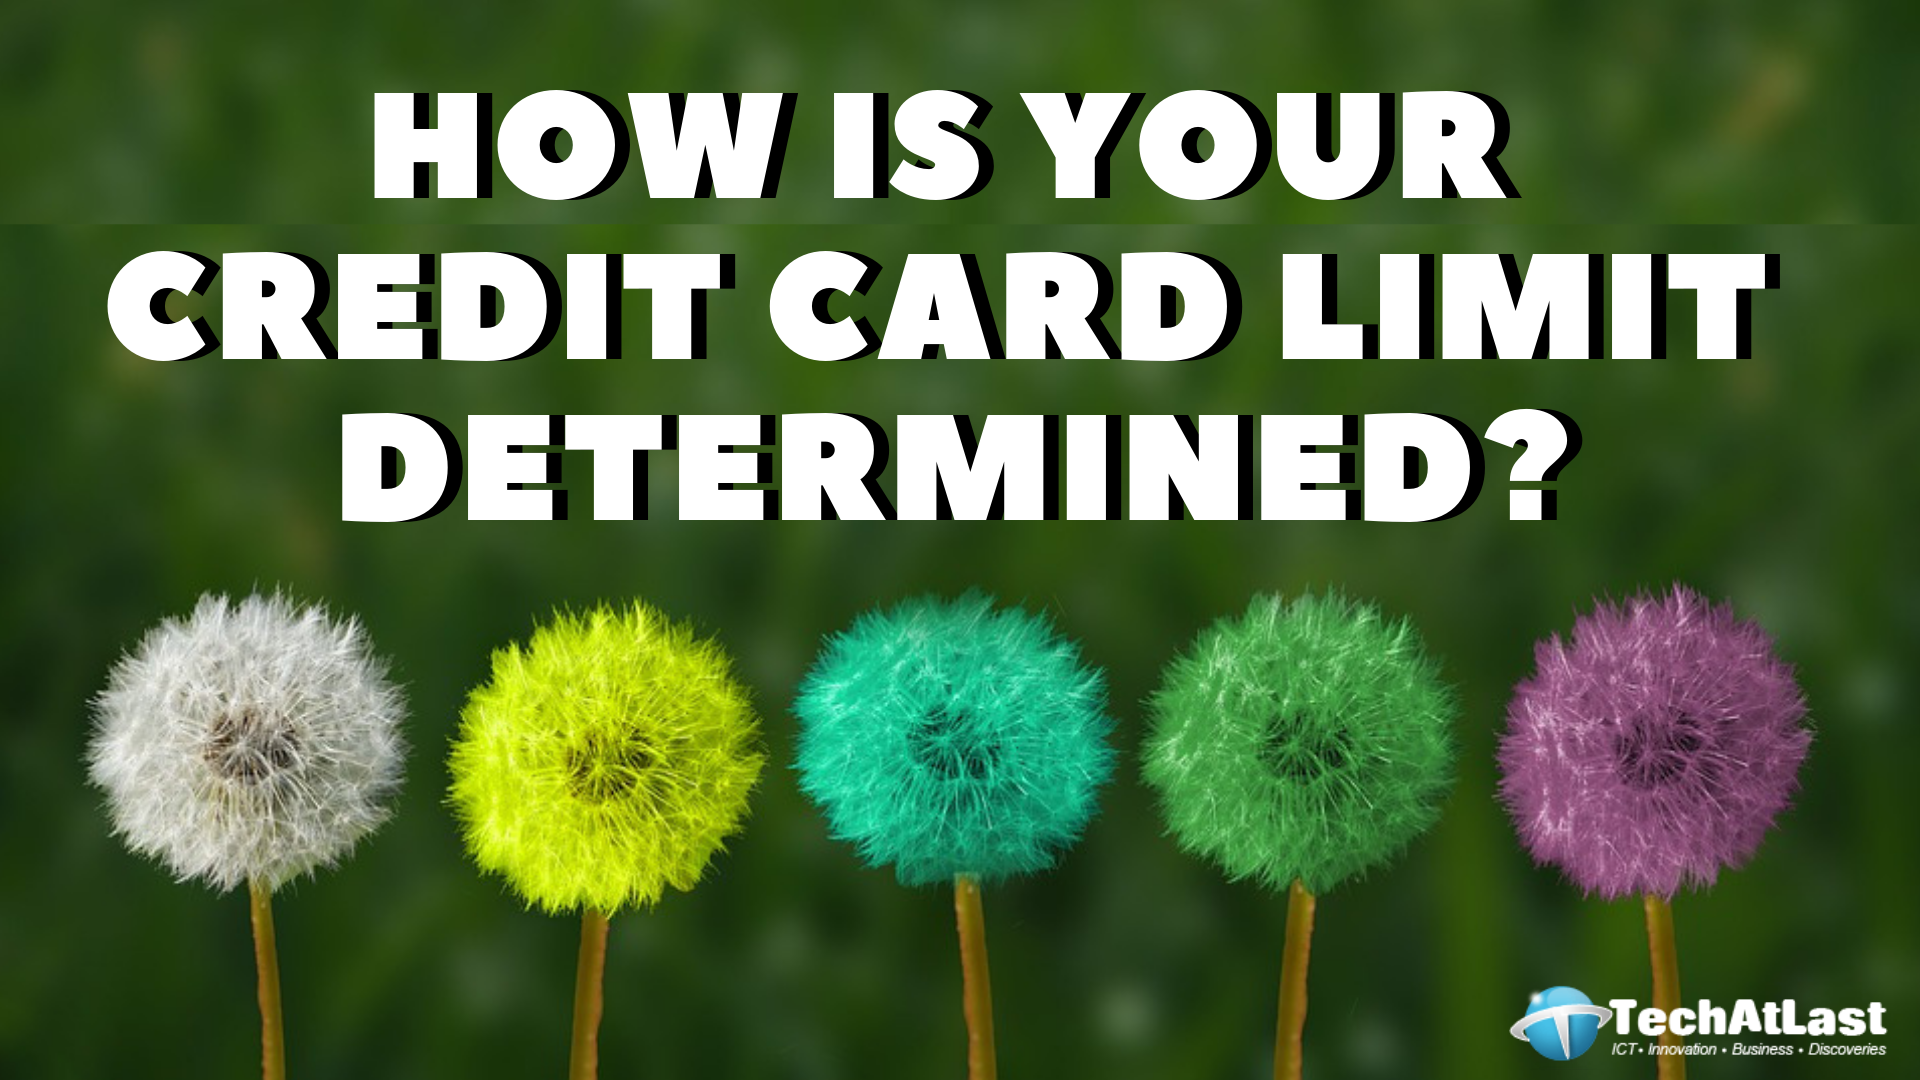 How Your Credit Card Limit is Determined